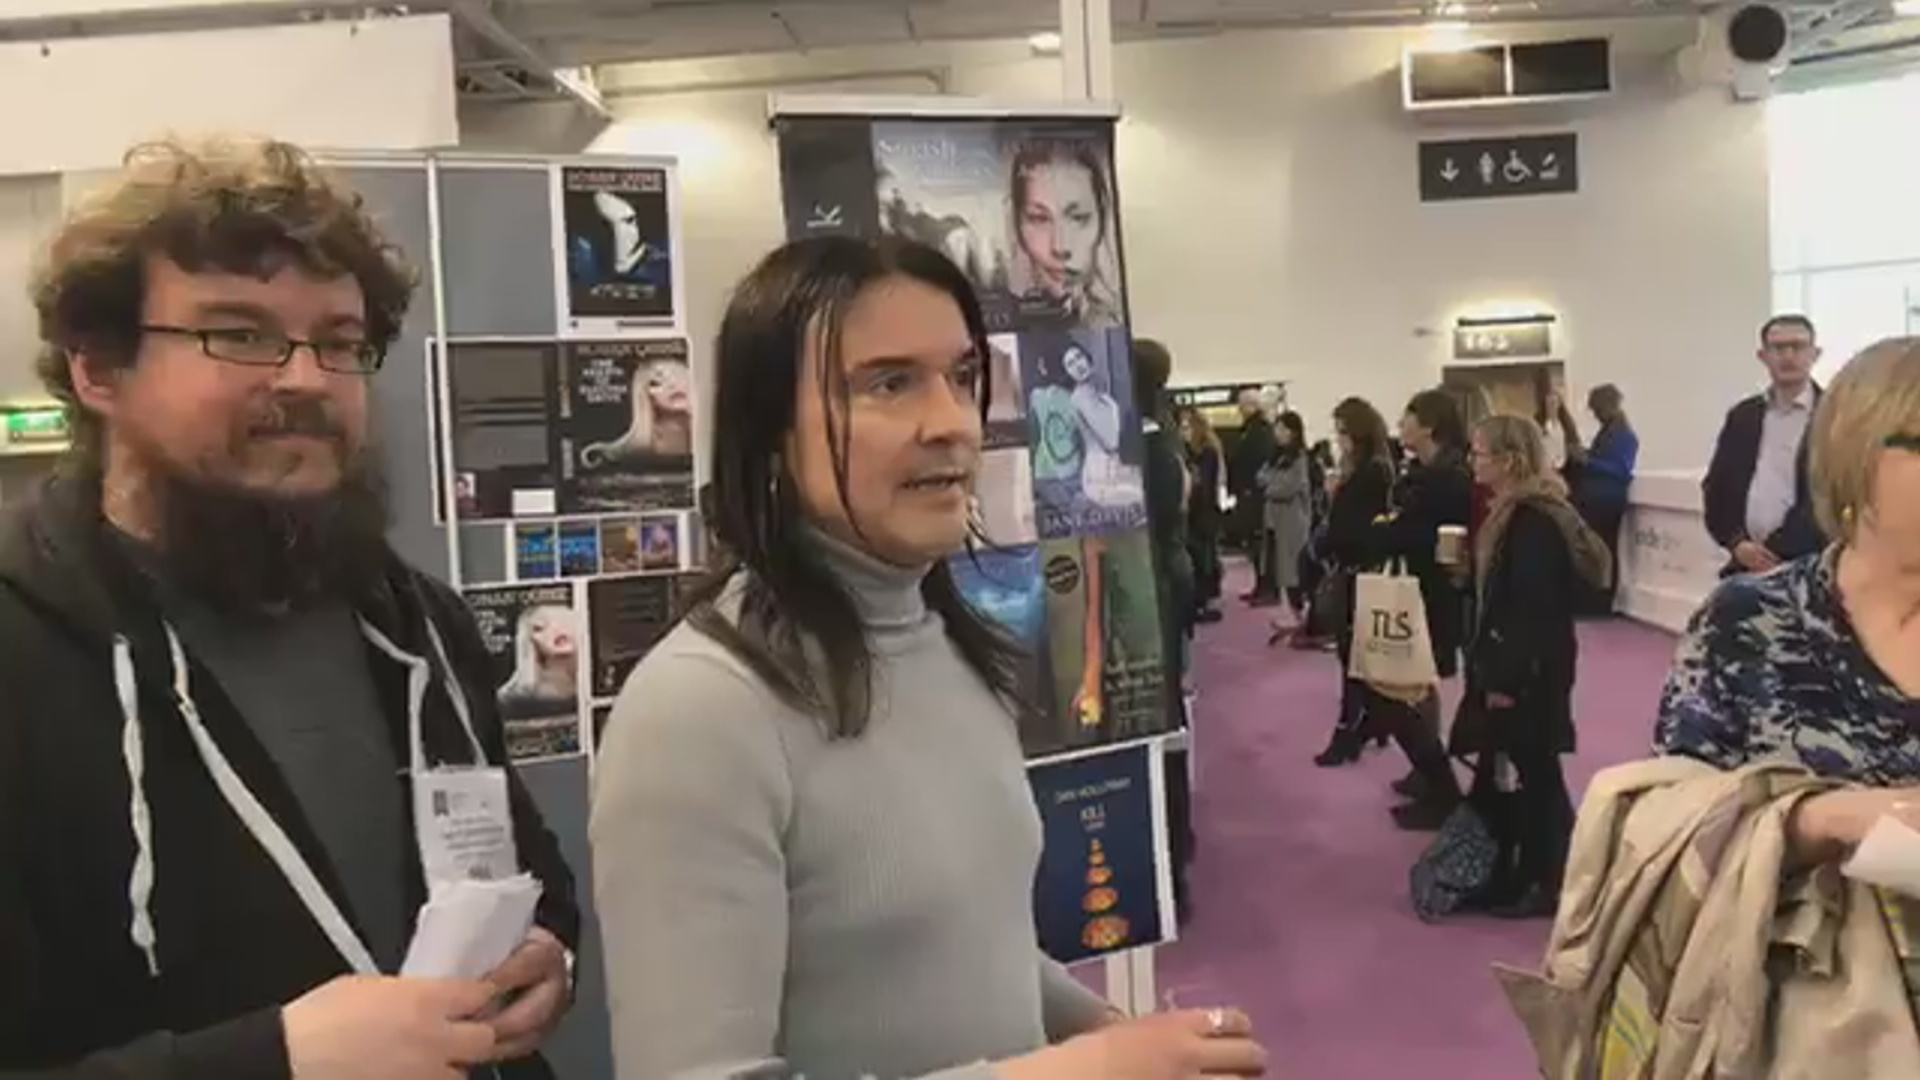 LBF18 launch of Rohan Quine's 'The Beasts of Electra Drive', Dan Holloway's 'Kill Land' & Jane Davis's 'Smash all the Windows' - 7